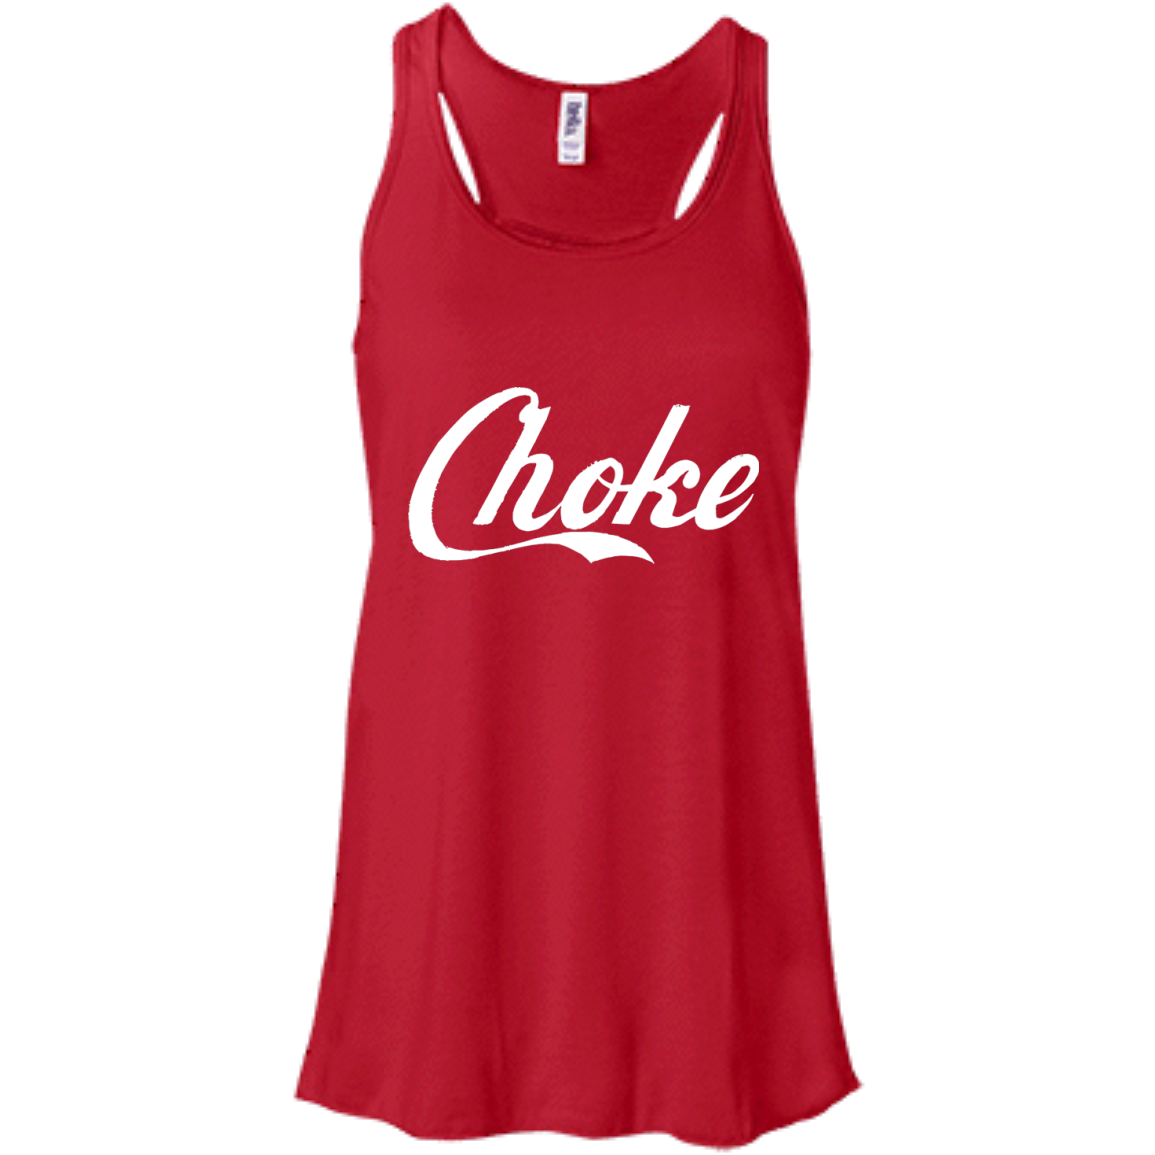 choke shirt choke logo coca cola t shirts hoodies. Black Bedroom Furniture Sets. Home Design Ideas